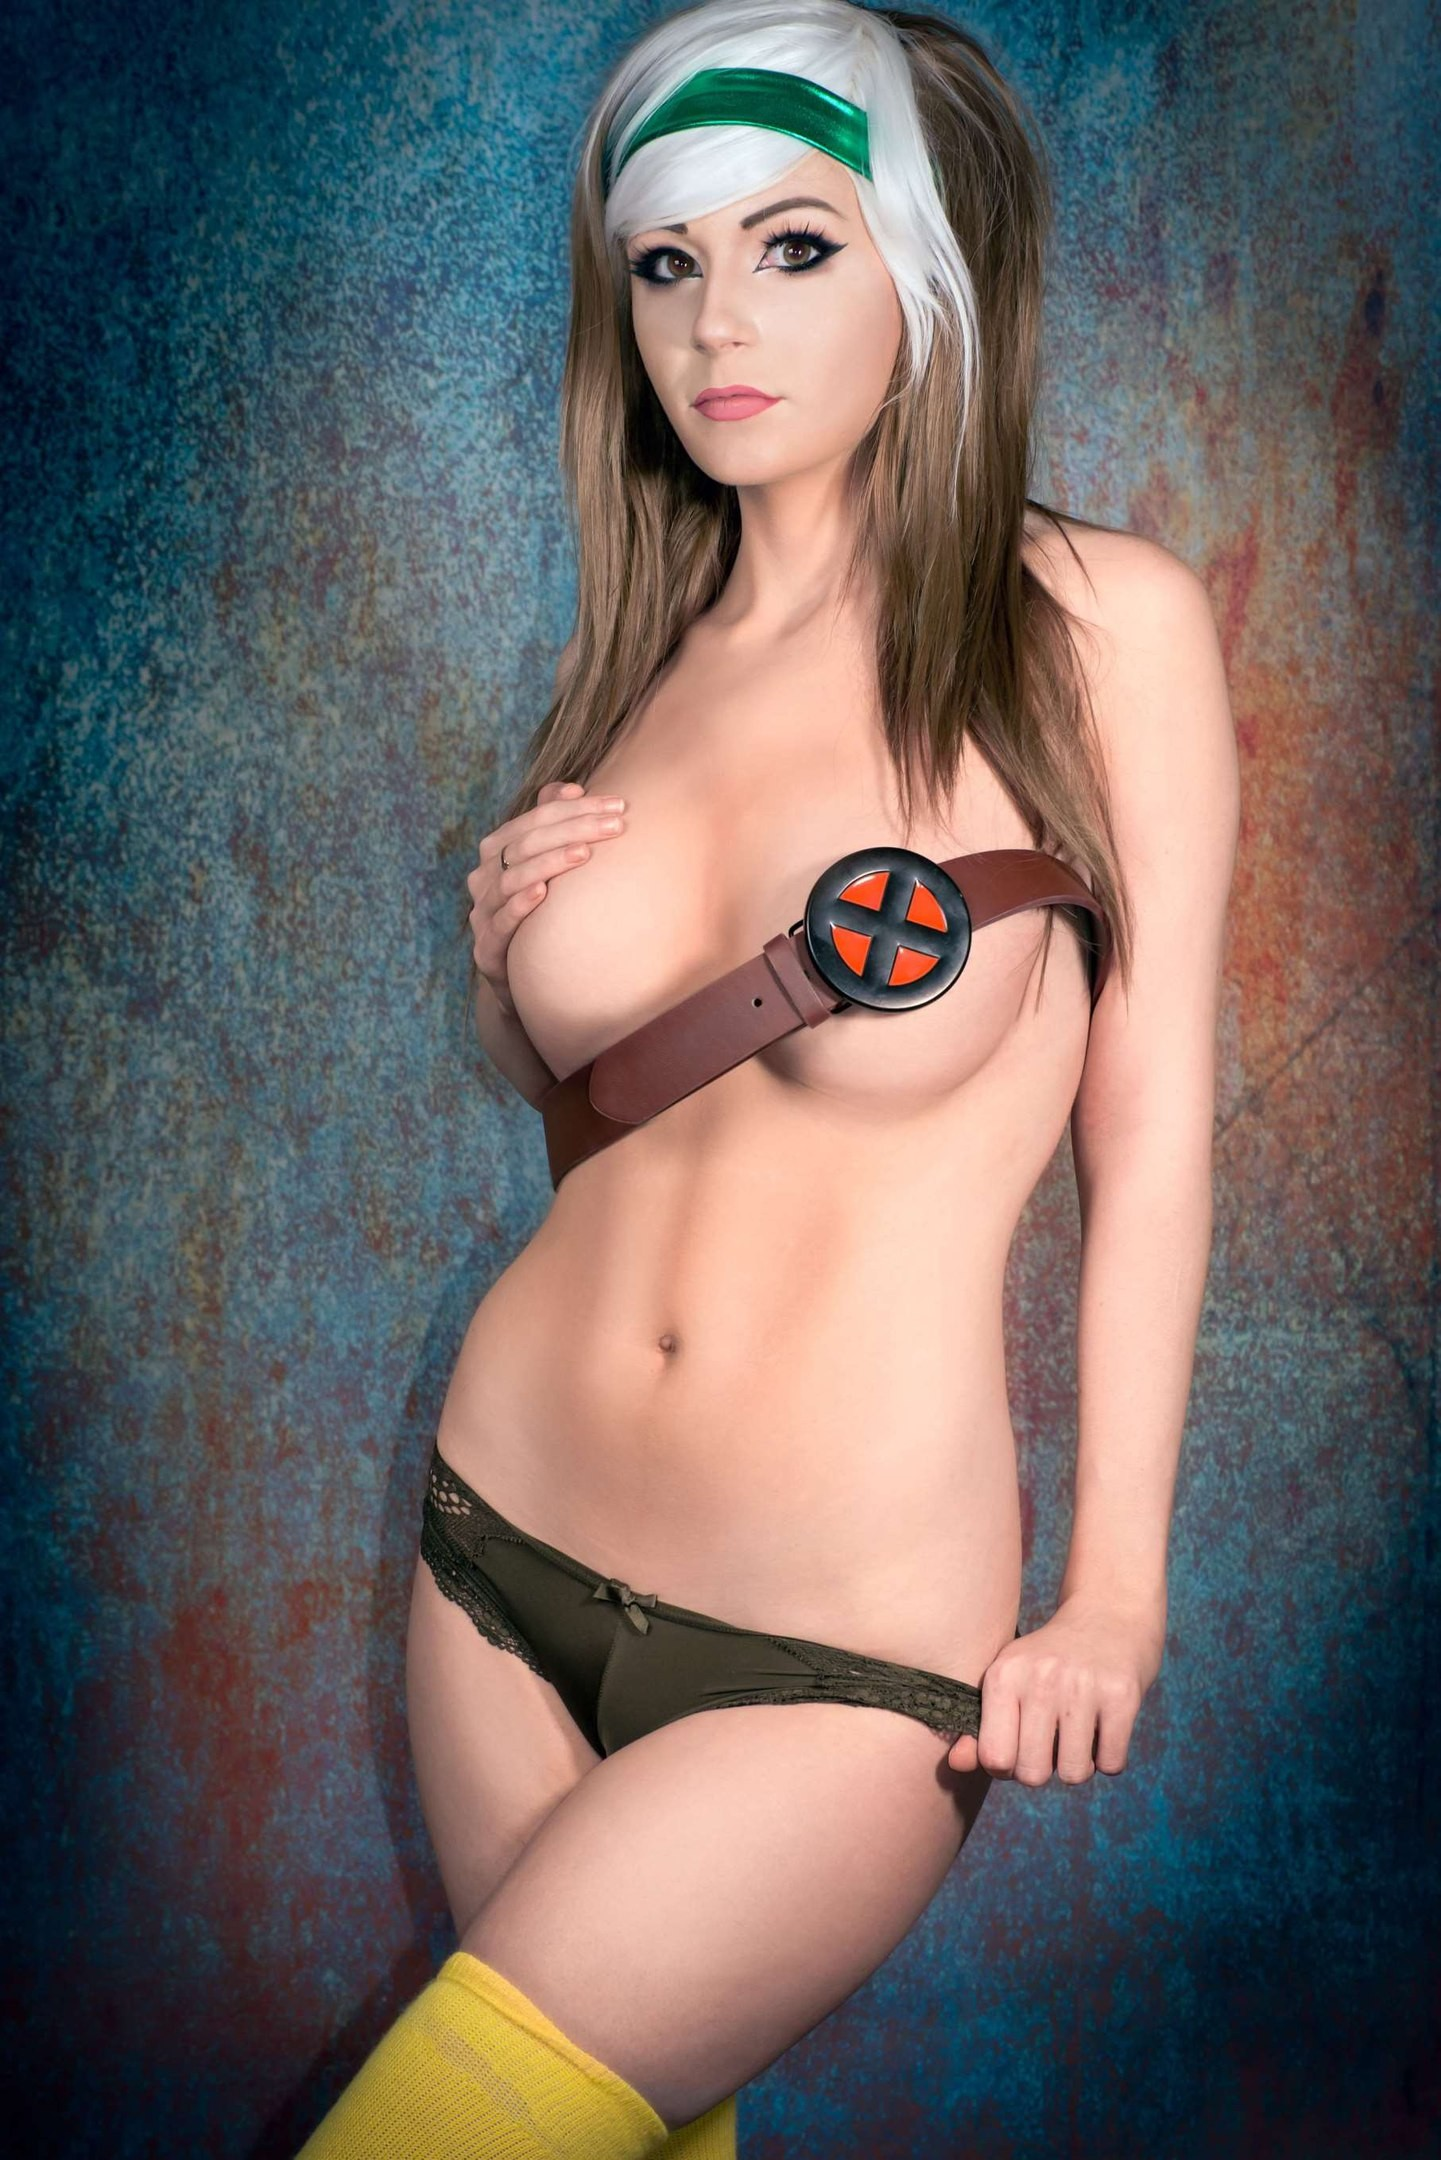 danielle-beaulieu_rogue_marvel_topless_cosplay_comics_x-men_attributes_boobs_nsfw_7666_0_5a91f2edf18cb